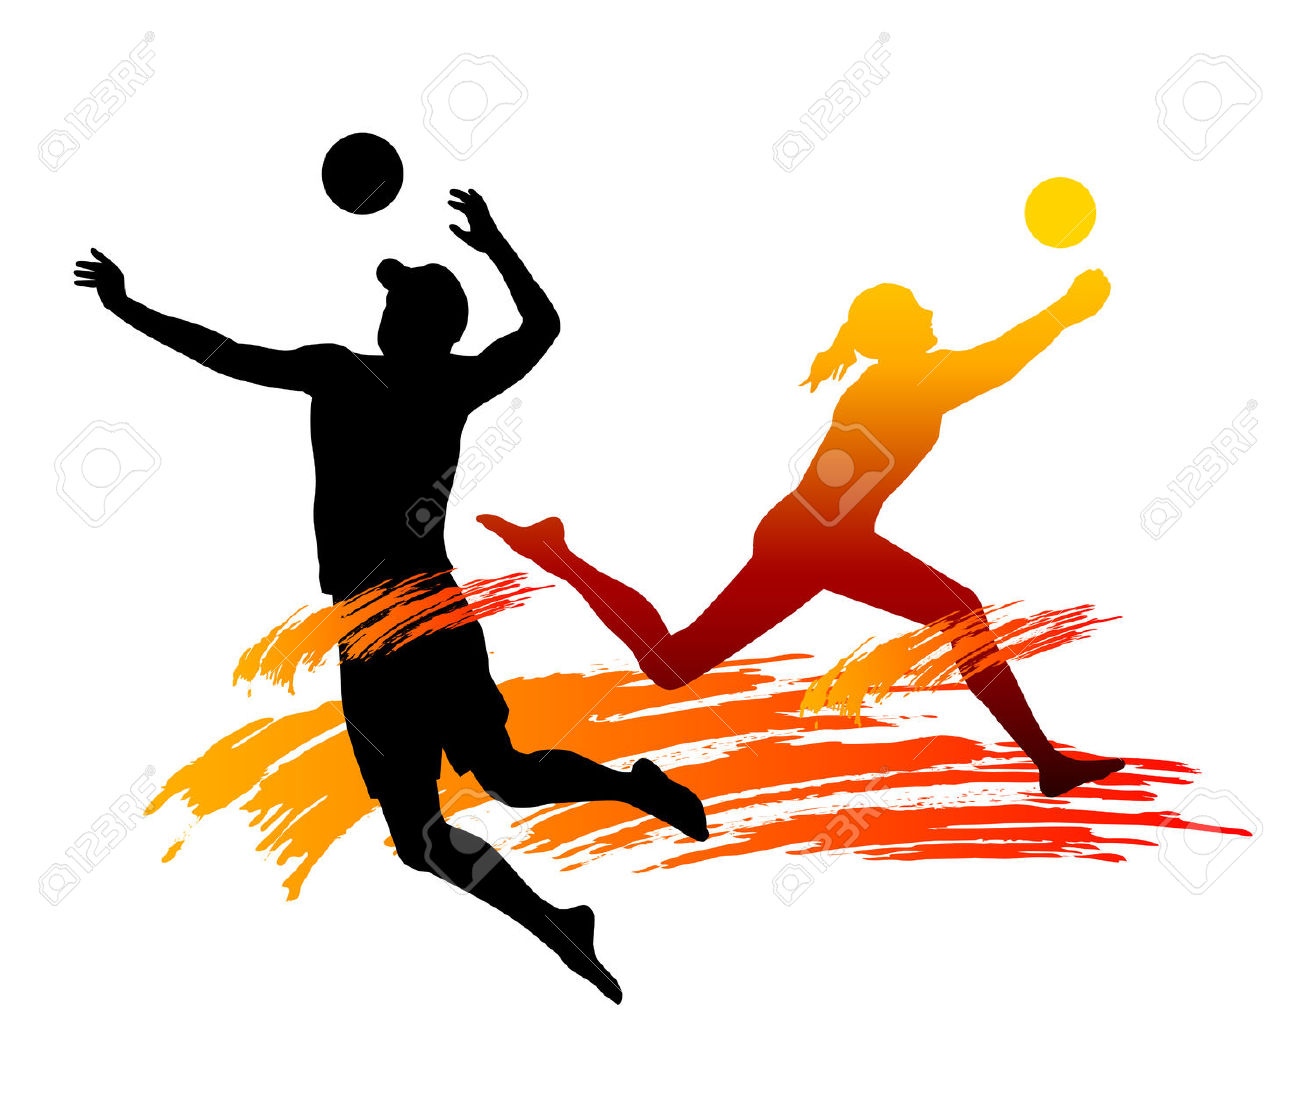 Volleyball playing. Clipart images free download